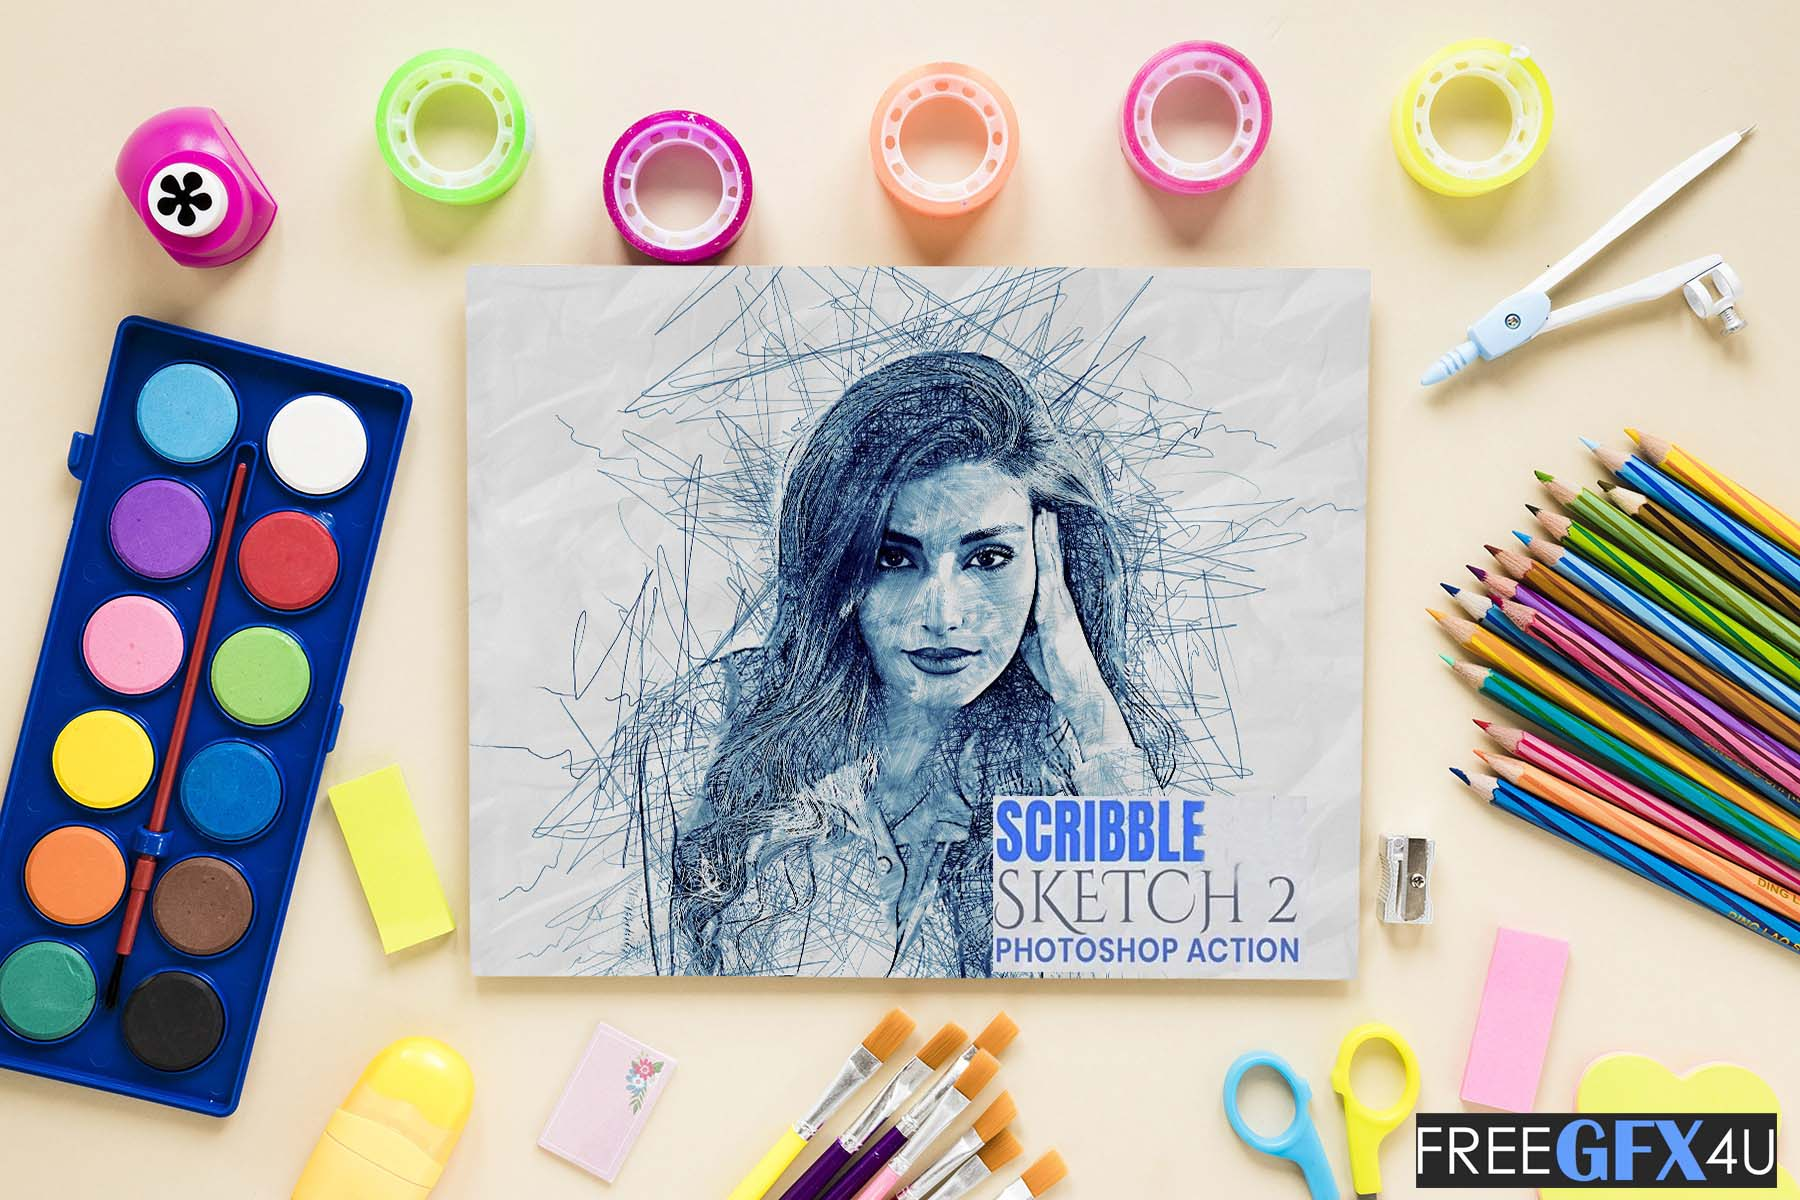 Scribble Sketch Photoshop Action